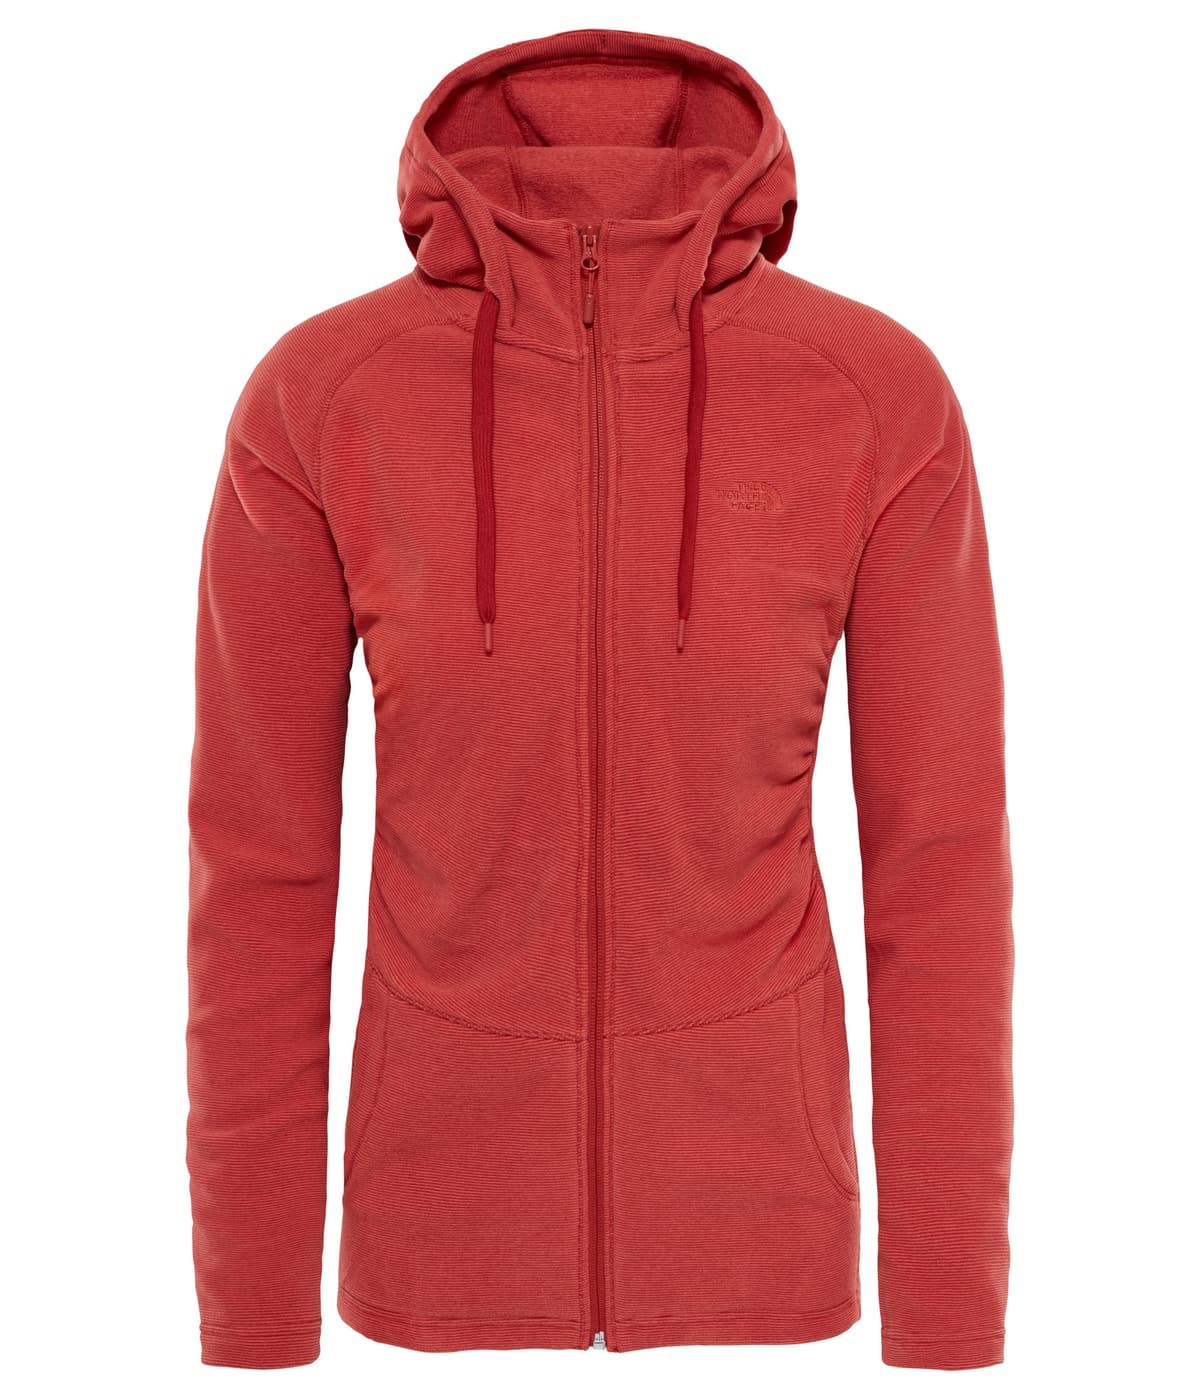 Hoodie Full Zip Giacca Donna North Da Face Pile Mezzeluna The In Sp7XSn